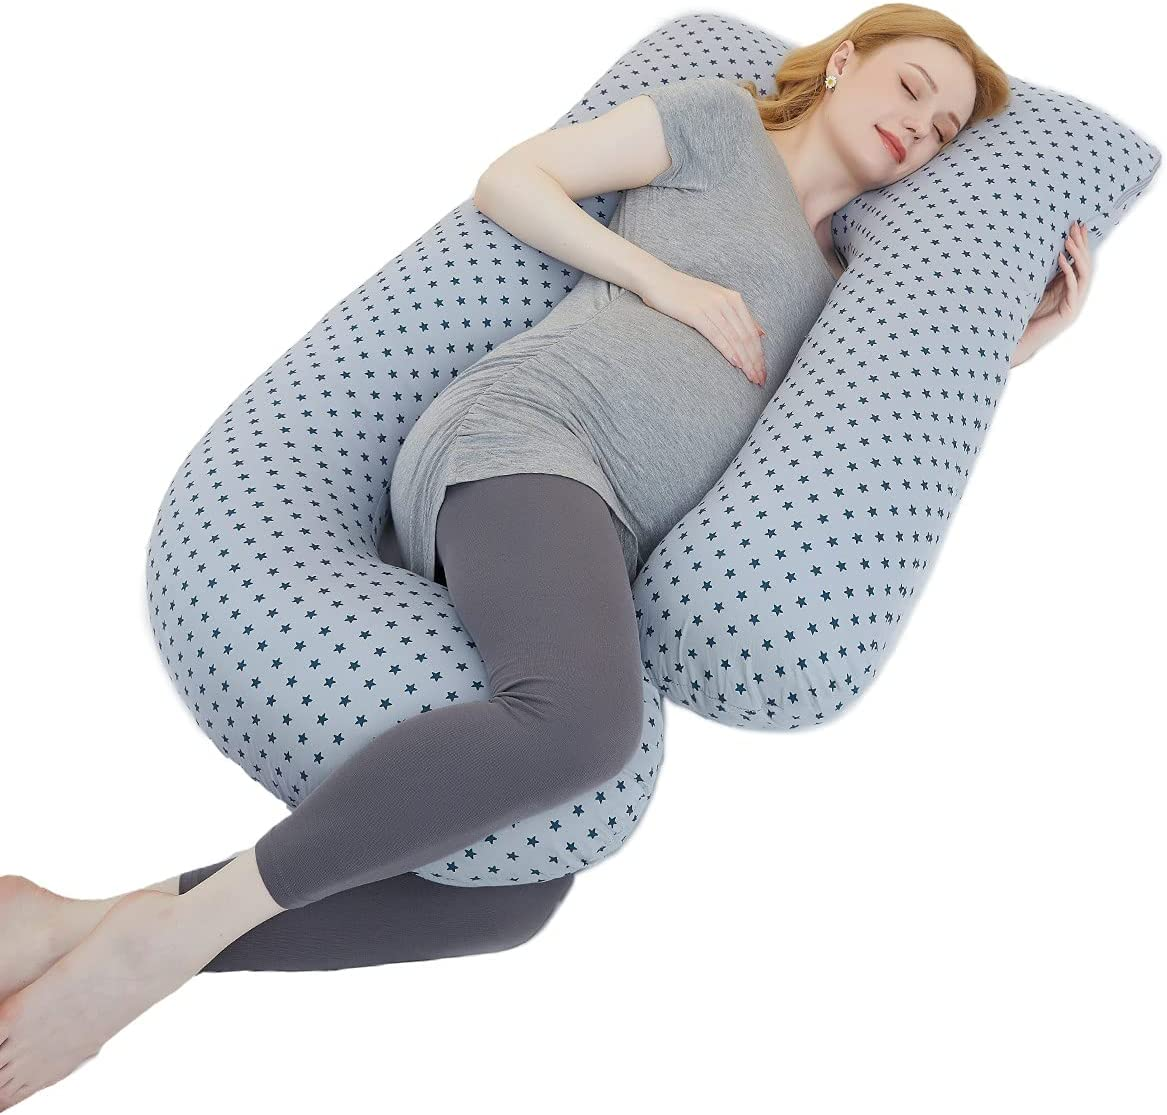 BBHoping Pregnancy Pillows Maternity Pillow for Sleeping U-Shaped Full Body Pillow for Pregnant Women